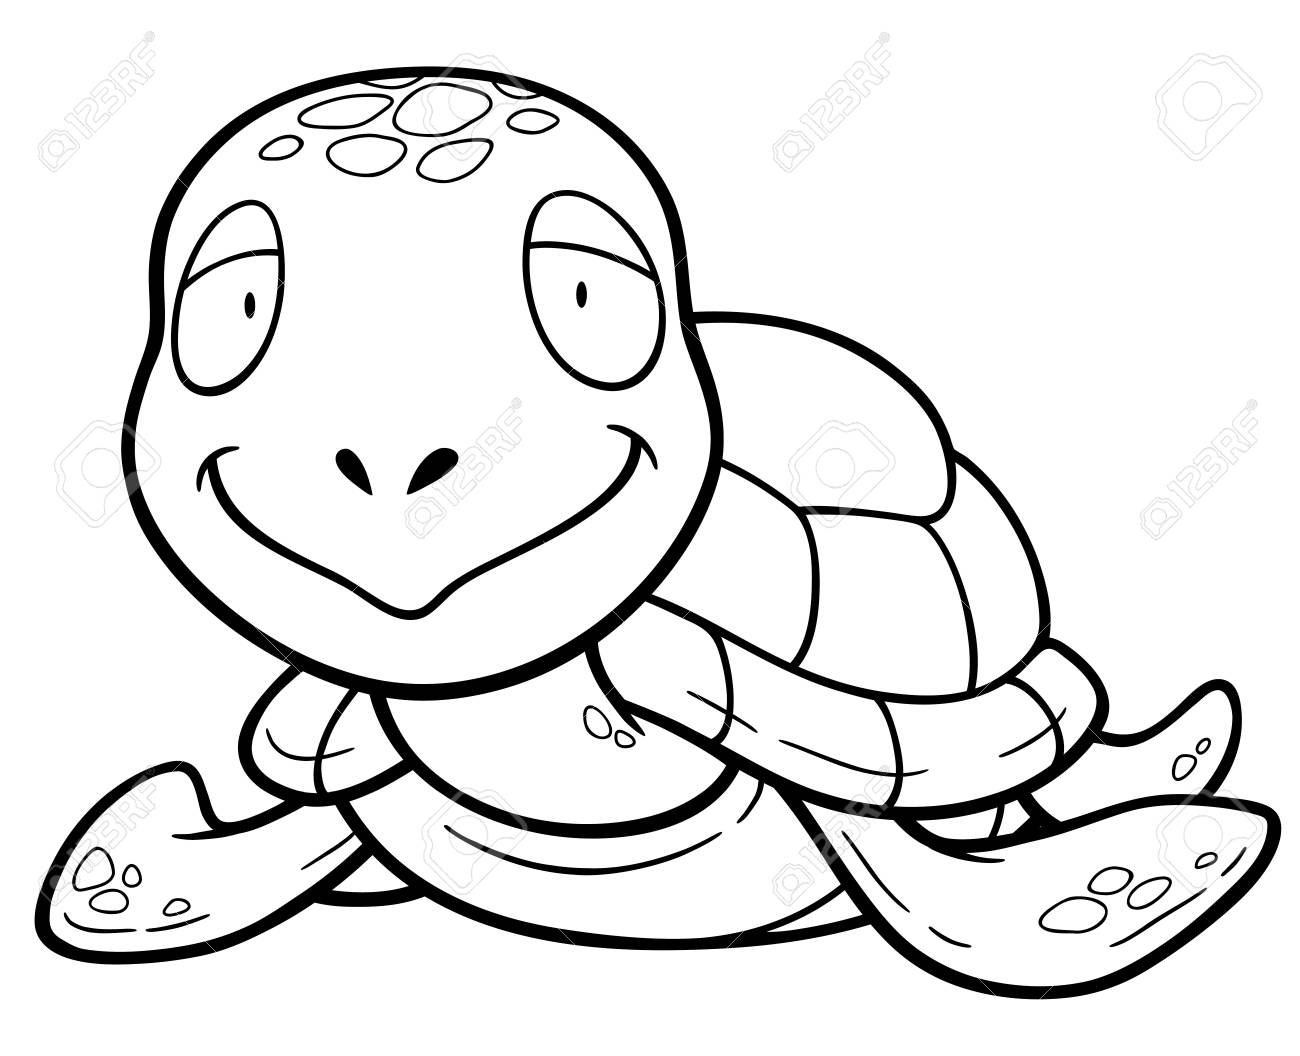 Illustration Of Cartoon Turtle Coloring Book